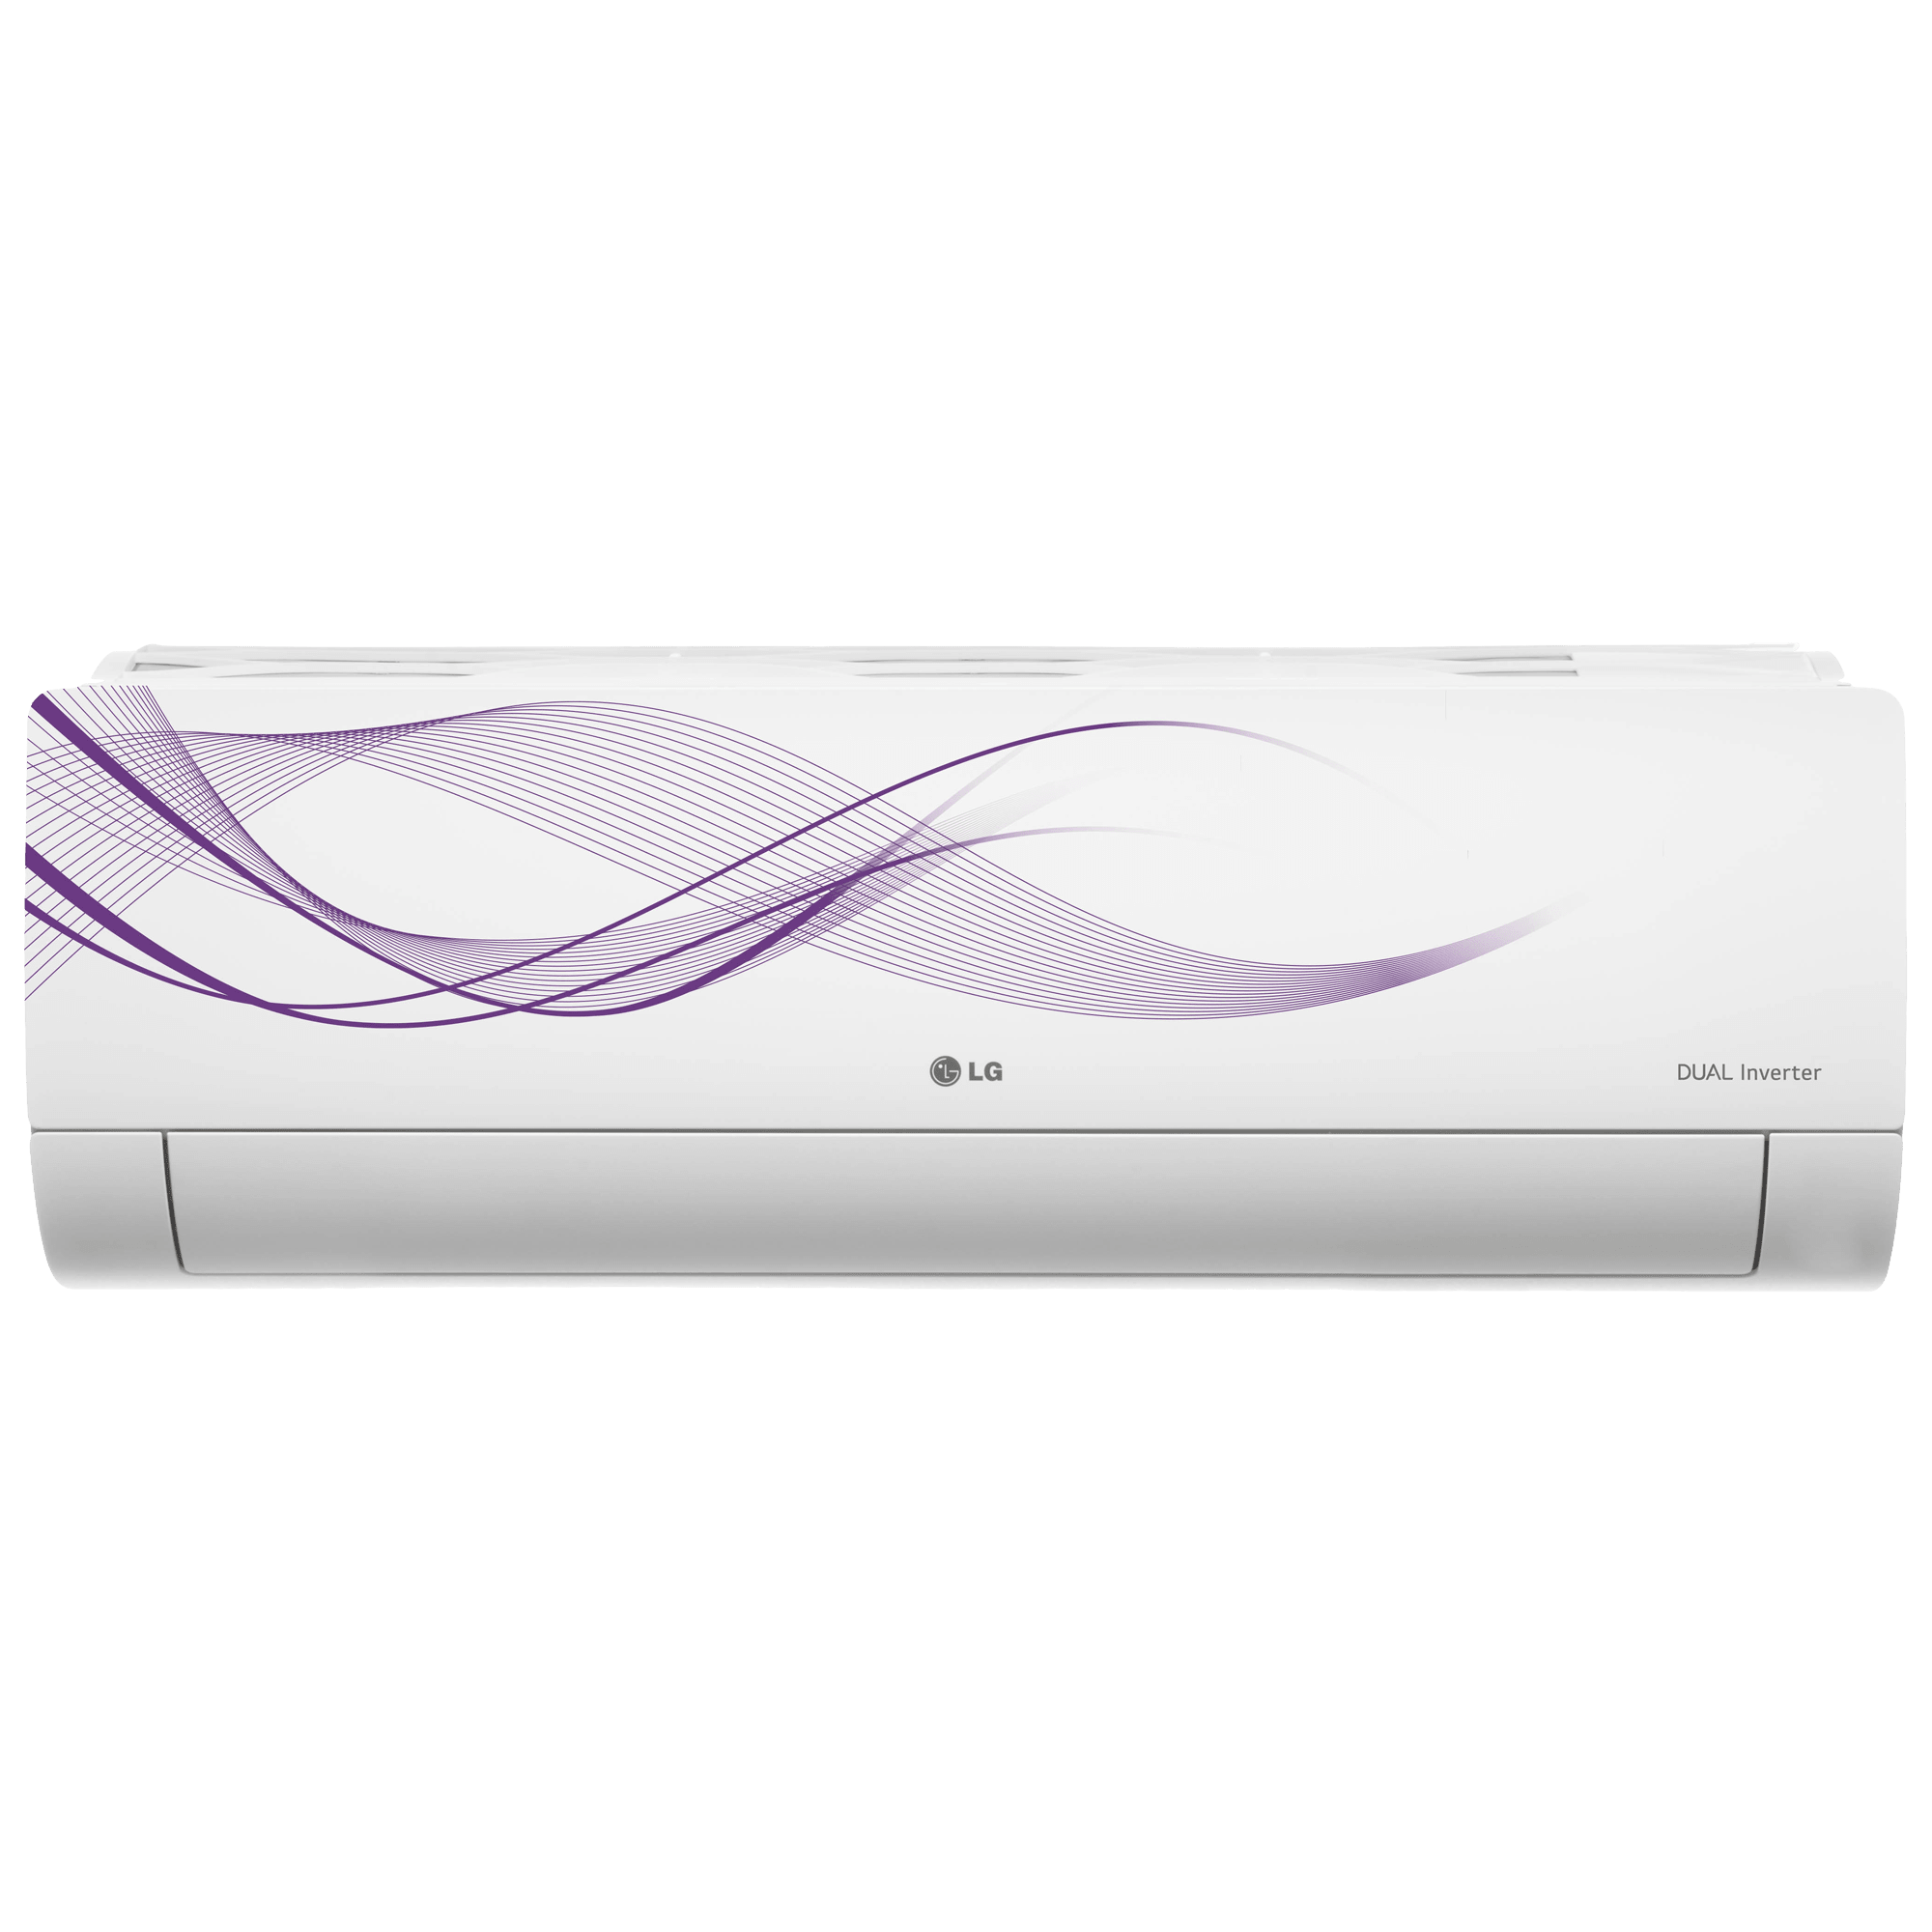 LG 1.5 Ton 5 Star Inverter Split AC (Air Purification Function, Copper Condenser, MS-Q18WNZA, White)